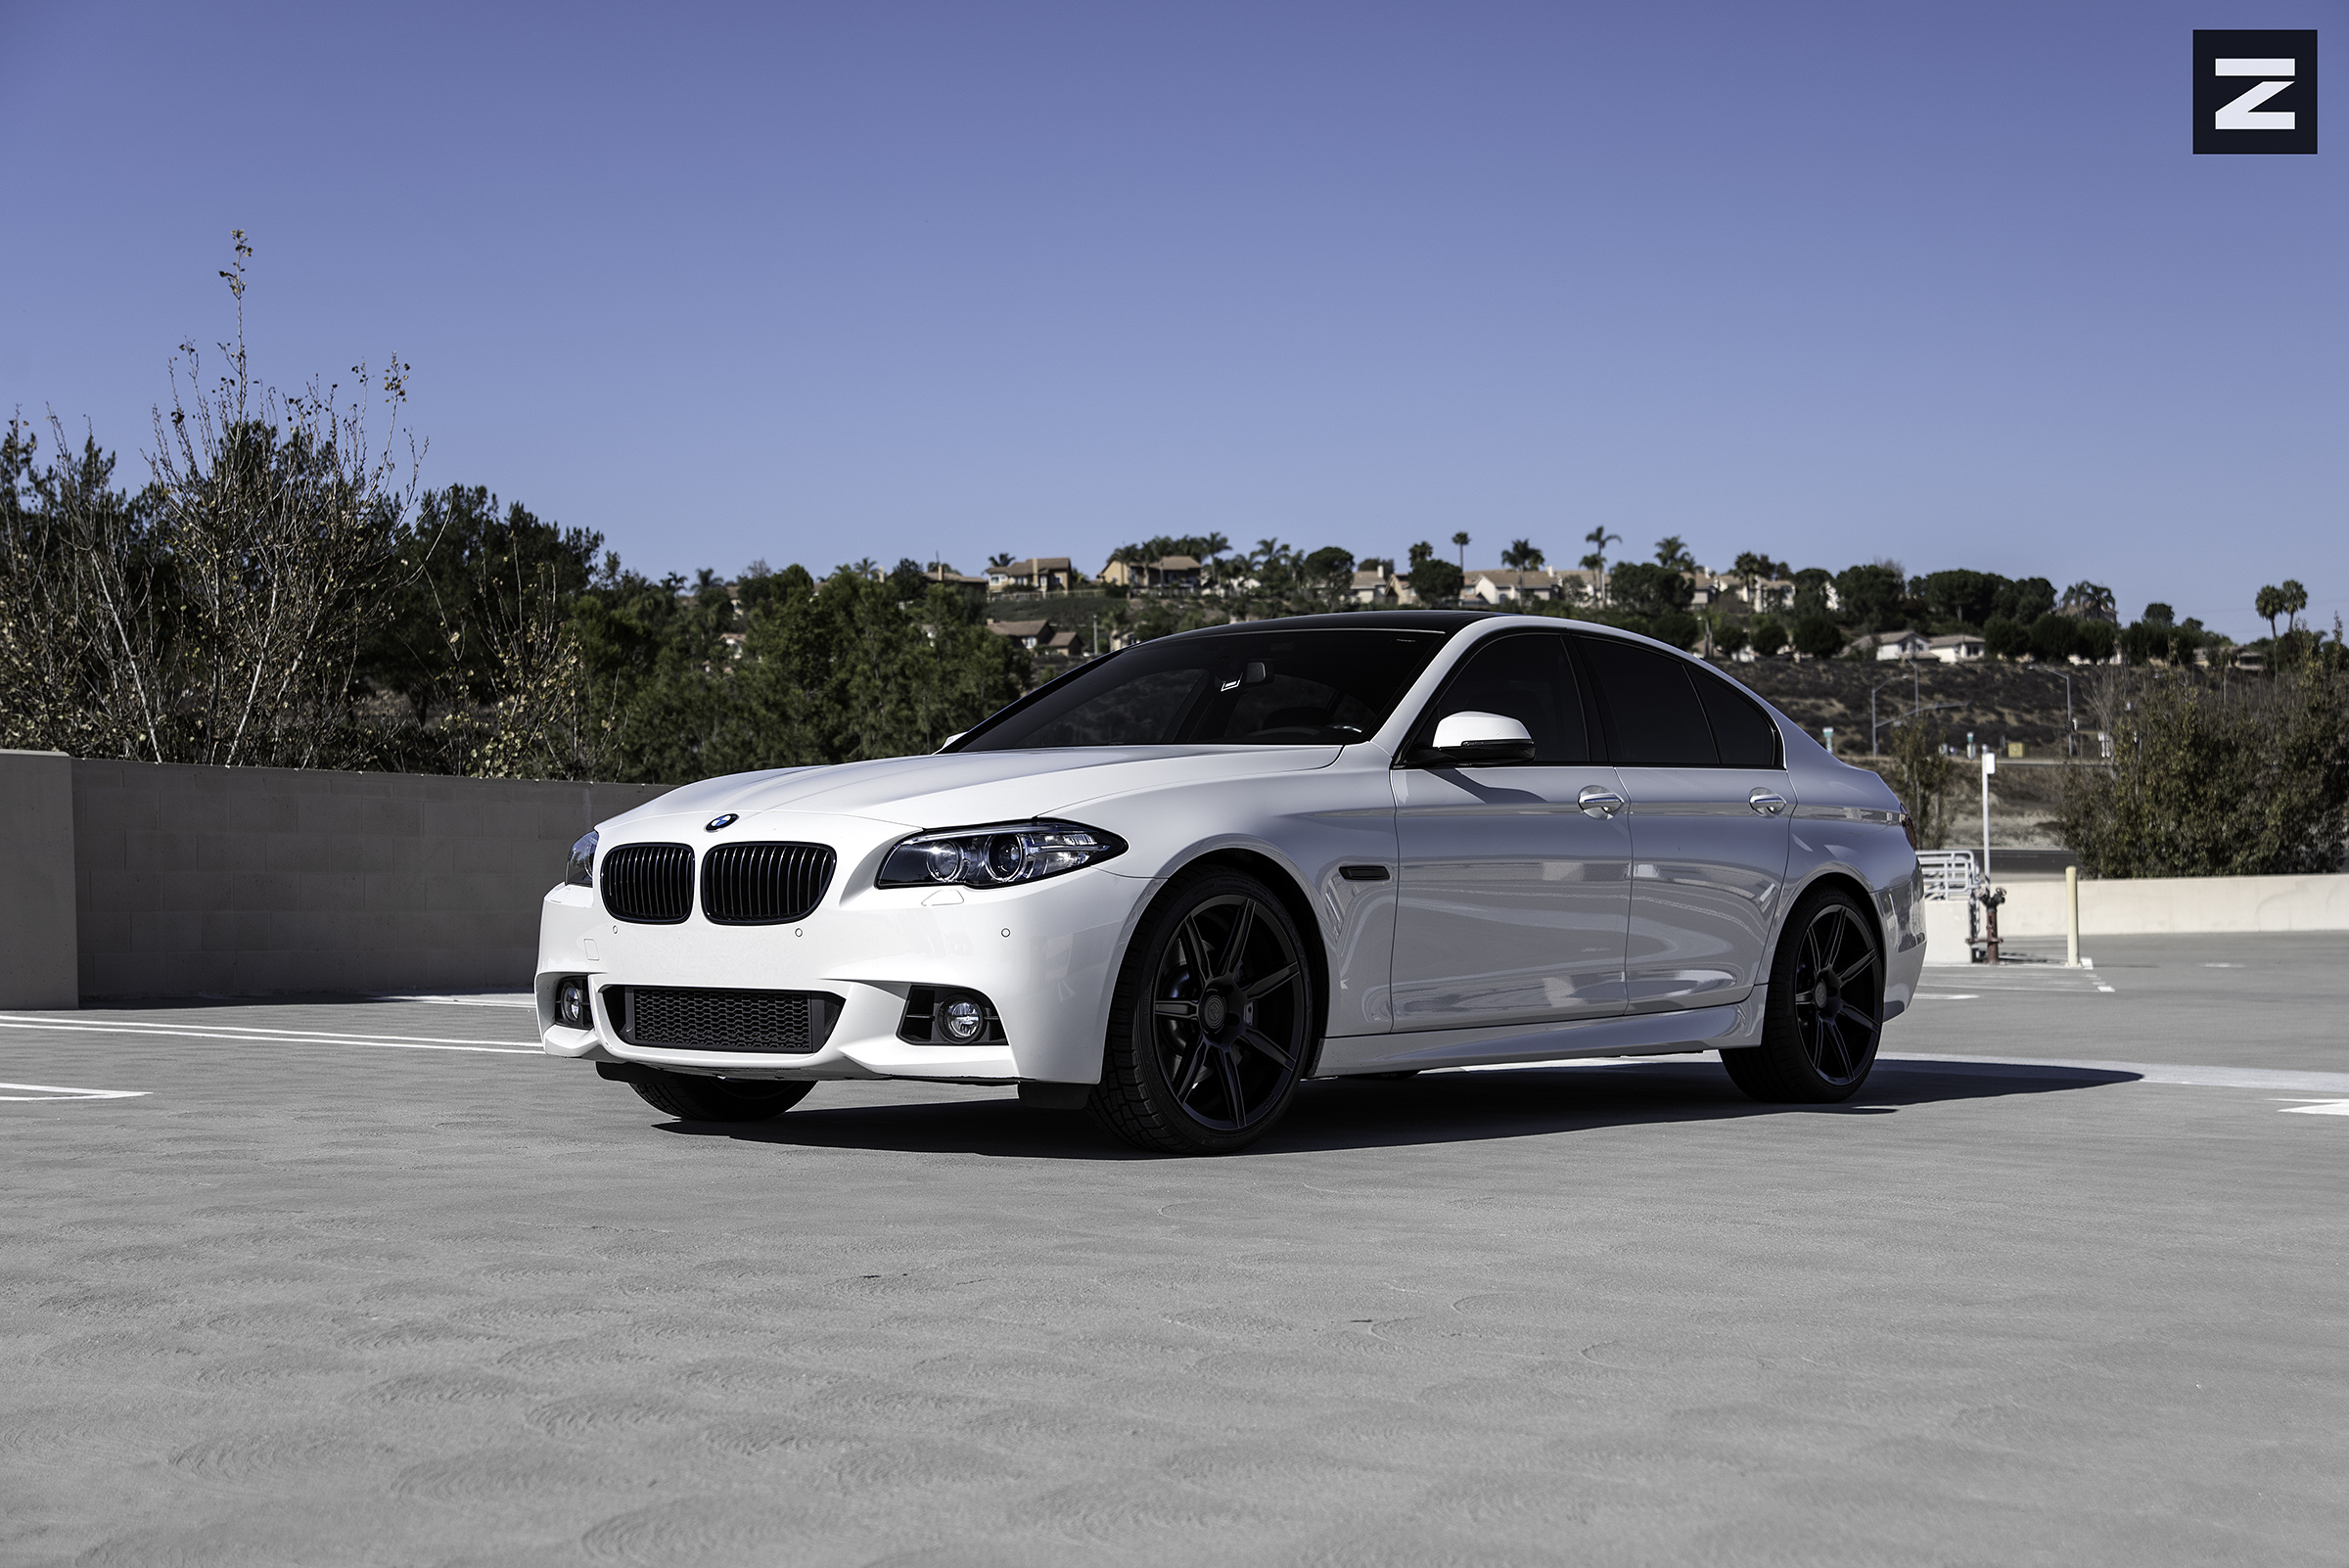 BMW F10 White Black ZS07